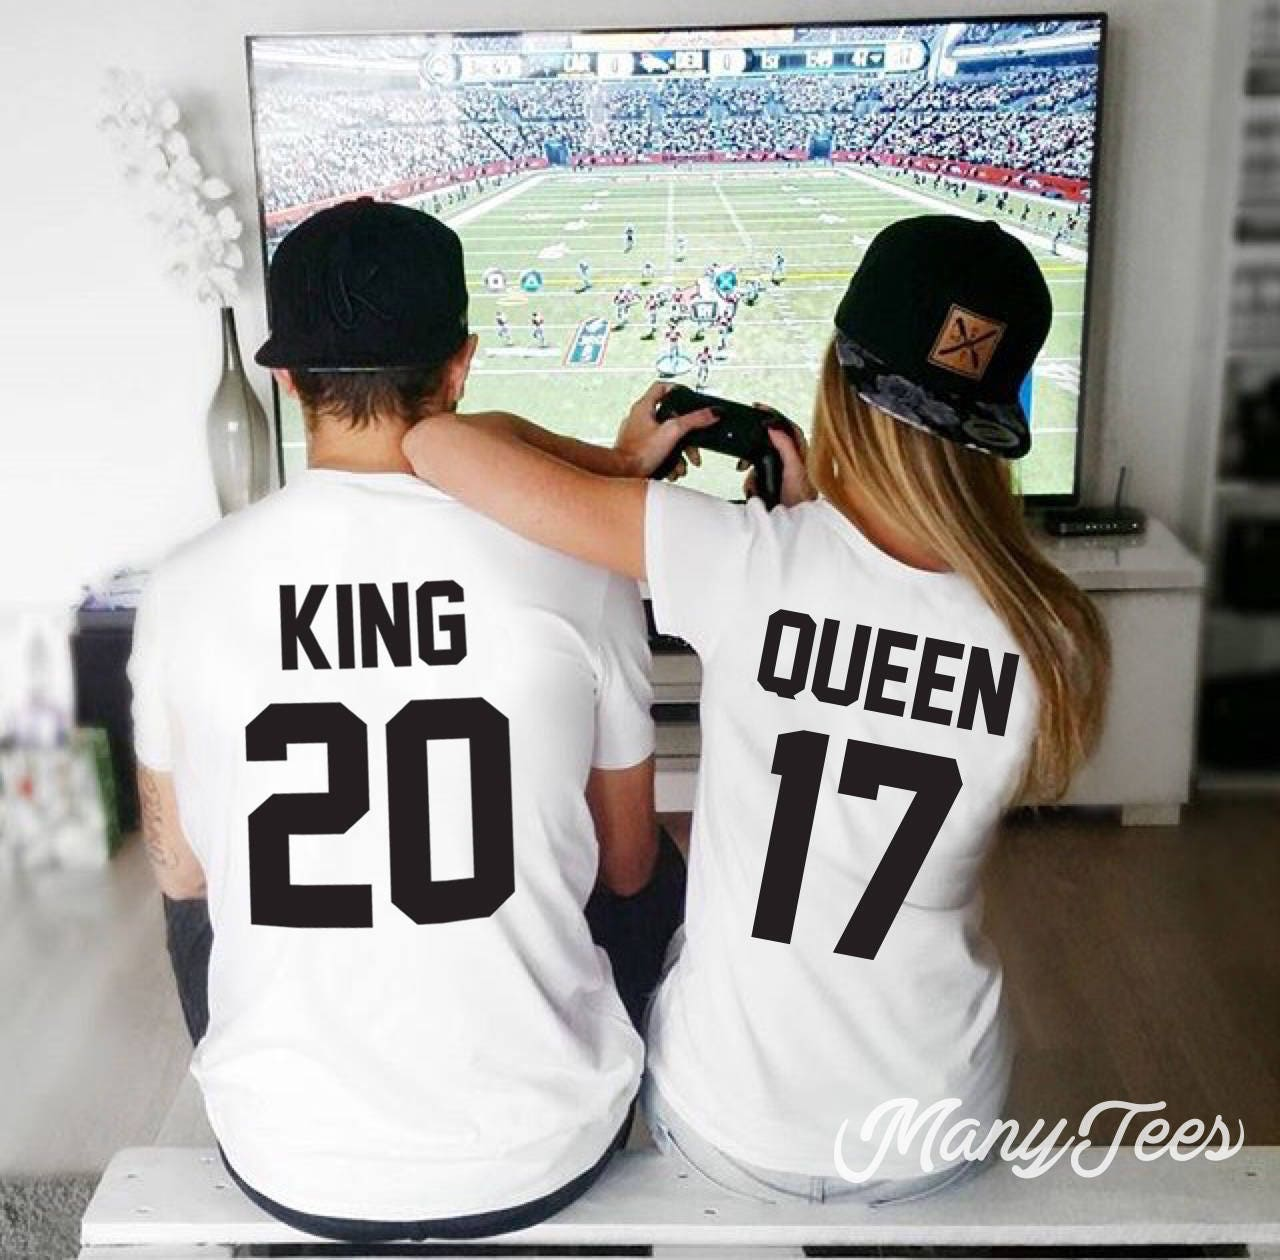 king and queen shirts couple t shirt couple tees king queen 01 etsy